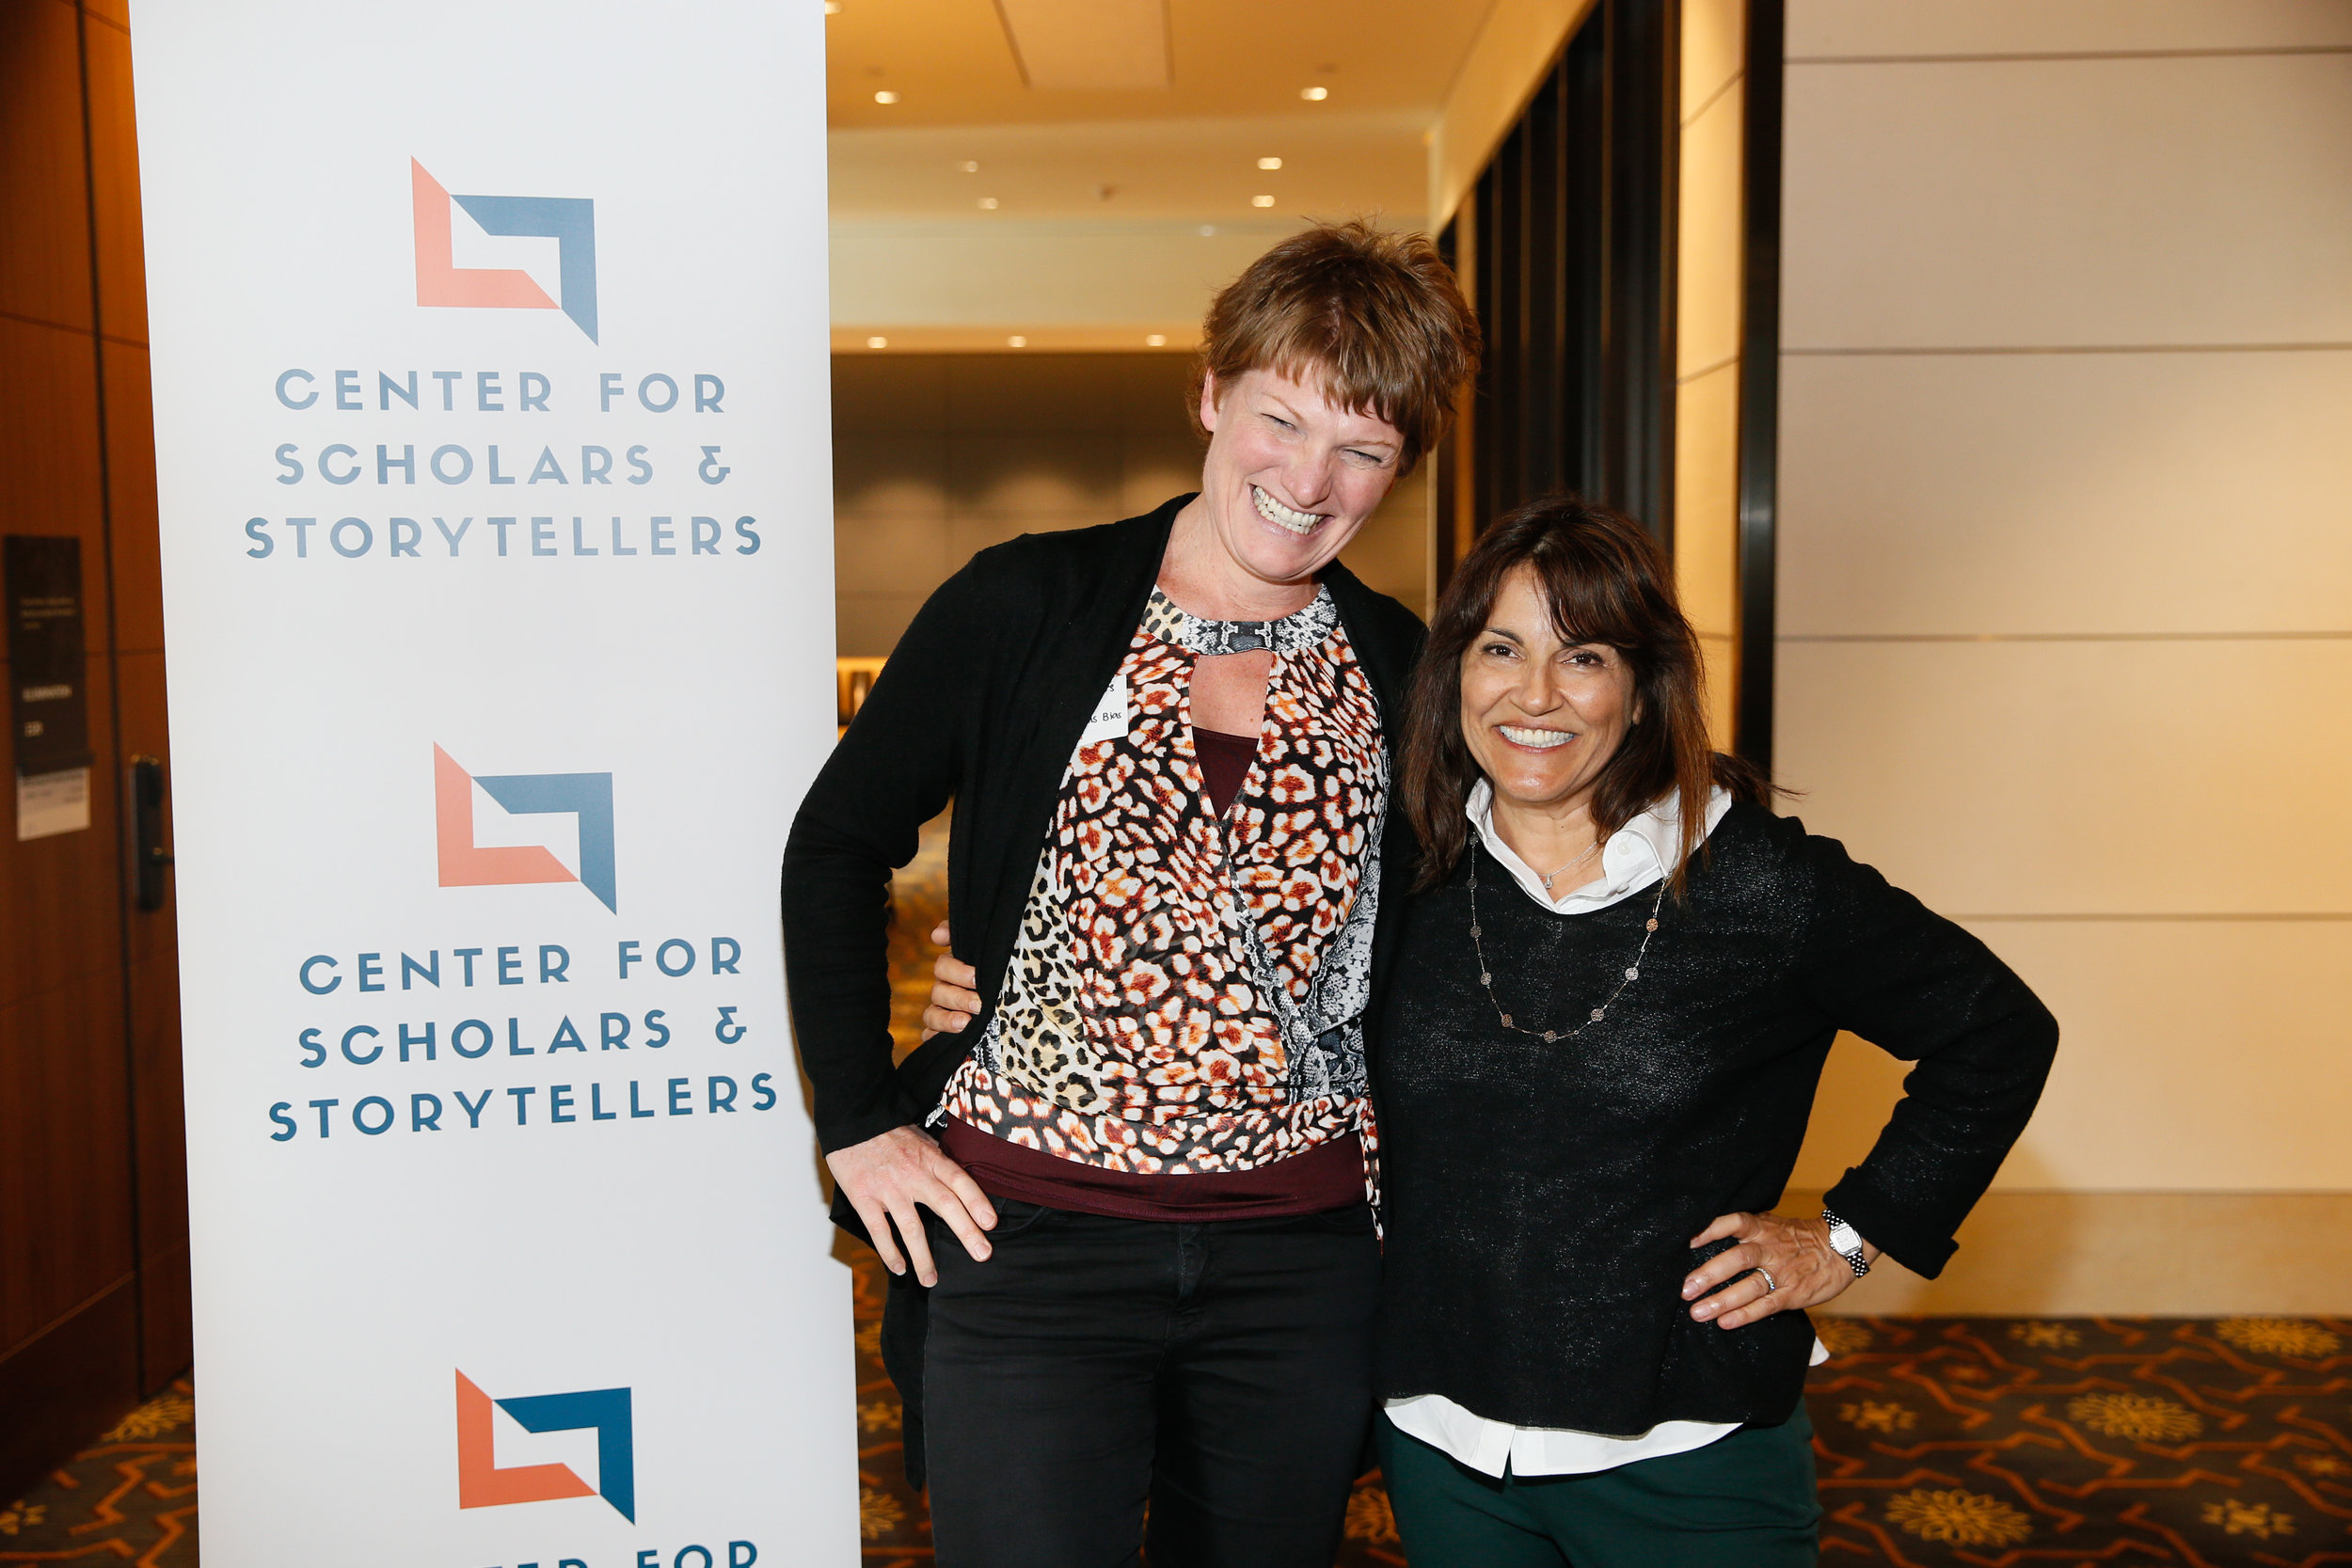 UCI's Dr. Candice Odgers (left) with CSS Founder and Executive Director Dr. Yalda T. Uhls (right).